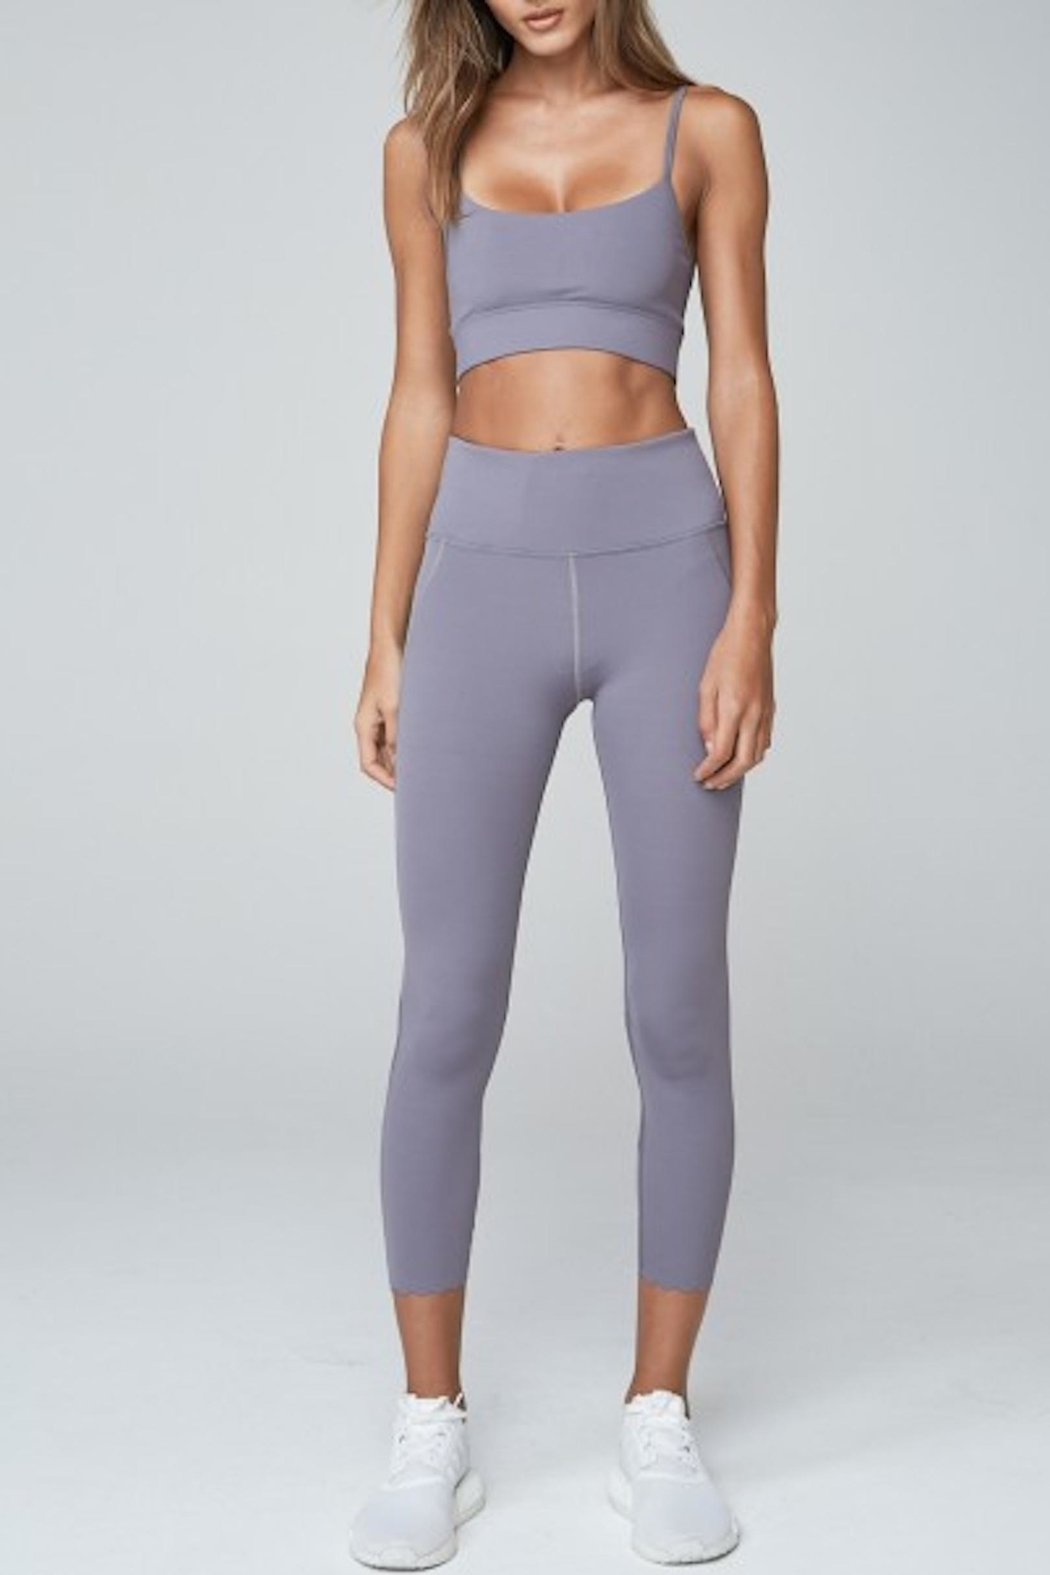 Varley Downing Excalibur Legging - Main Image